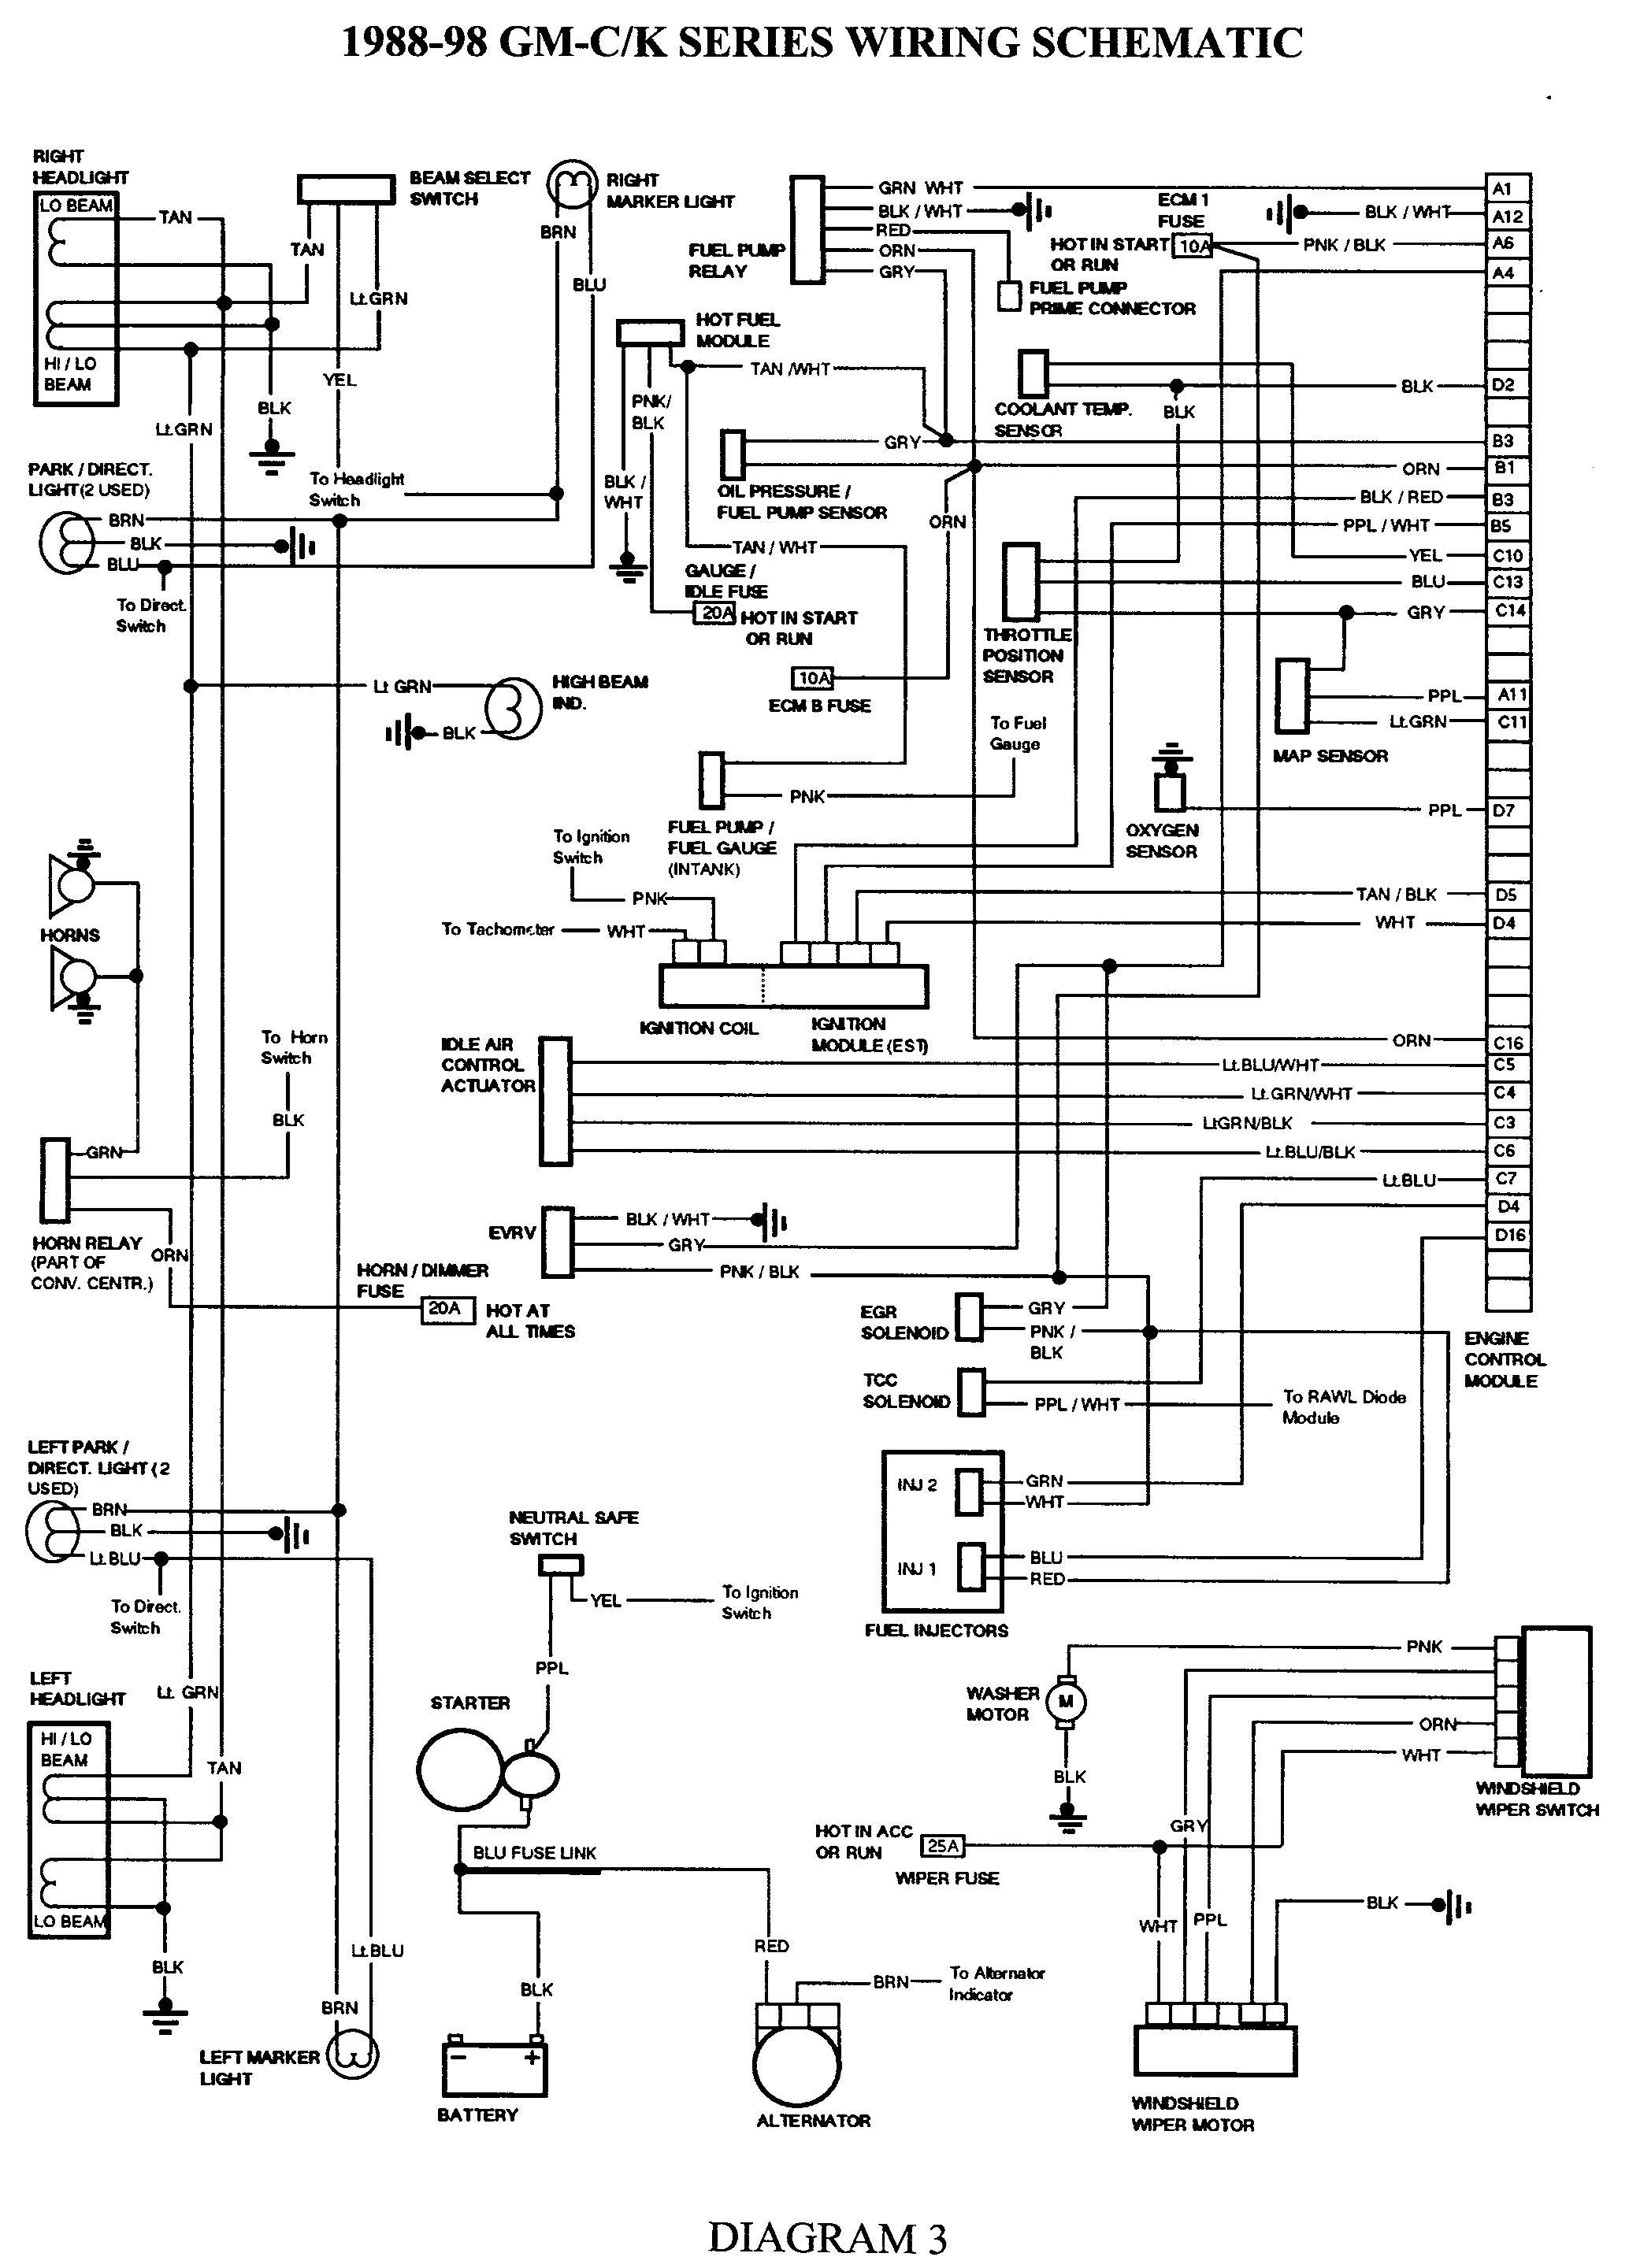 truck engine diagram 1989 chevrolet c1500 wiring diagram 1989 chevy rh detoxicrecenze com 1989 chevy c1500 radio wiring diagram 1989 chevy 1500 stereo wiring diagram